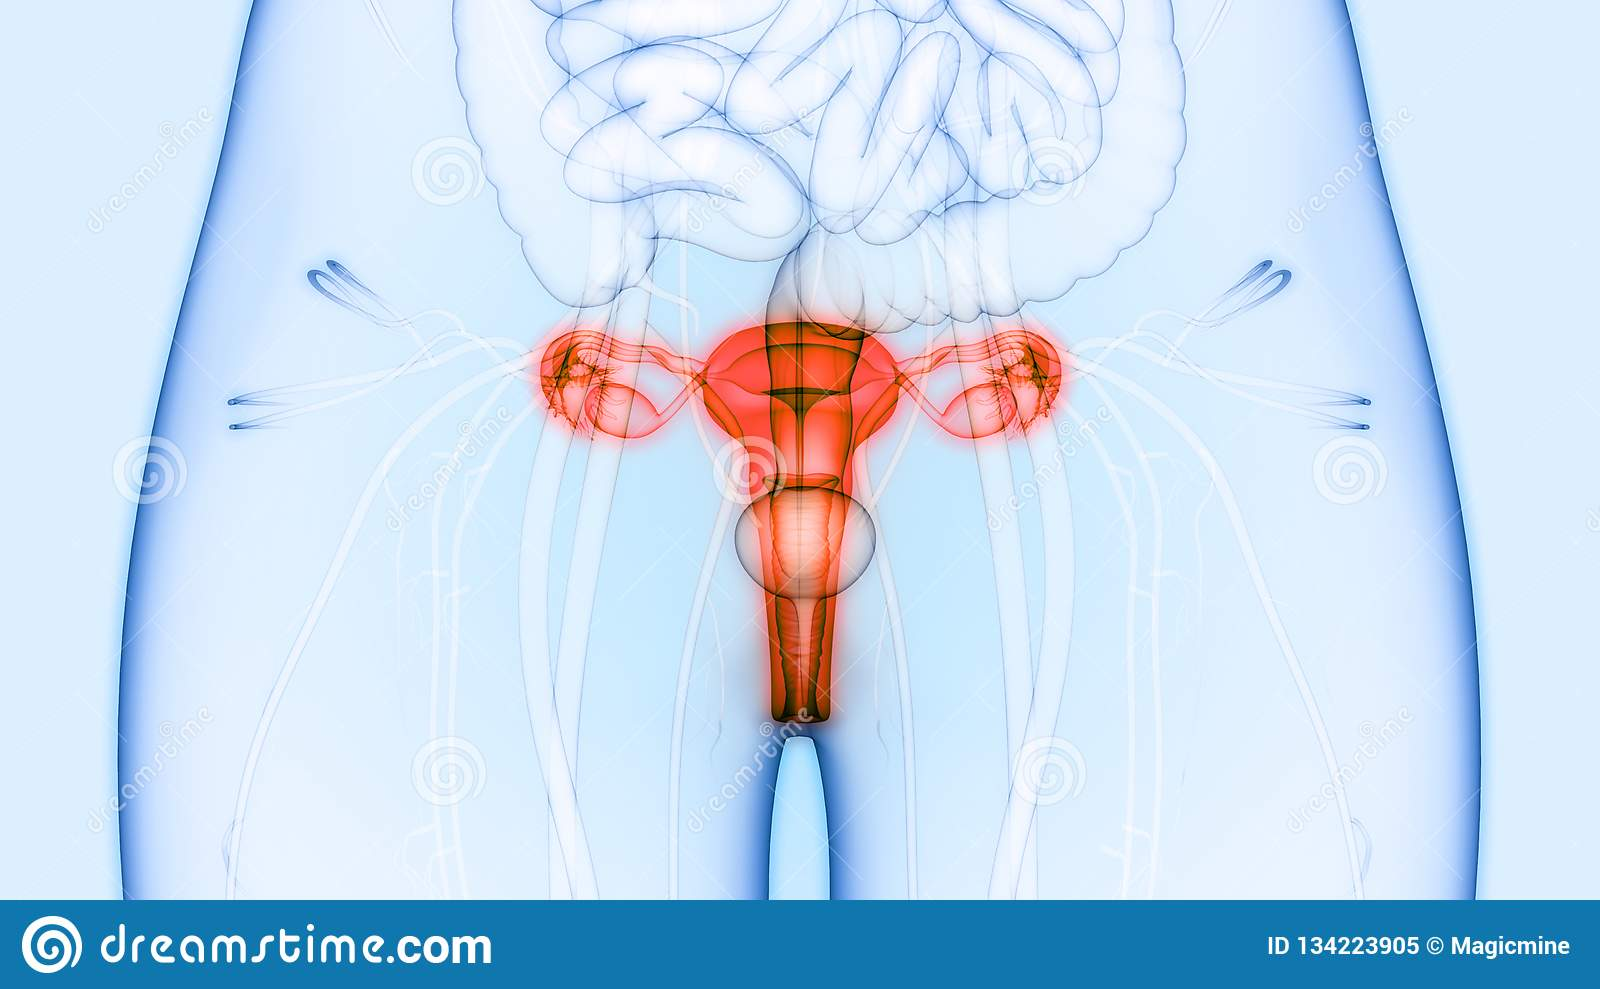 Female Reproductive System And Urinary System Kidneys With